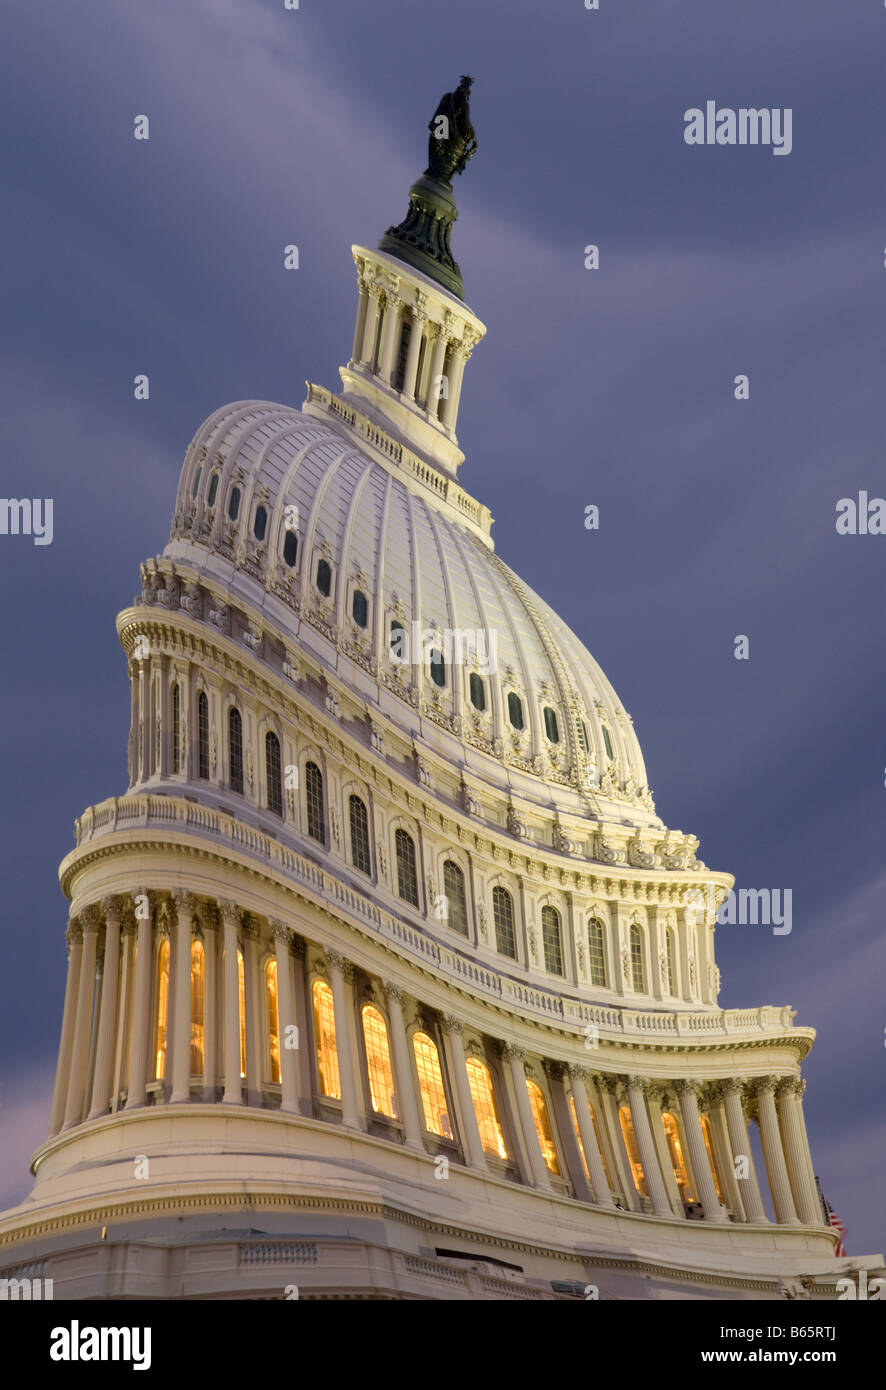 Dome of Capitol Building Washington DC humorously warped digital alteration - Stock Image